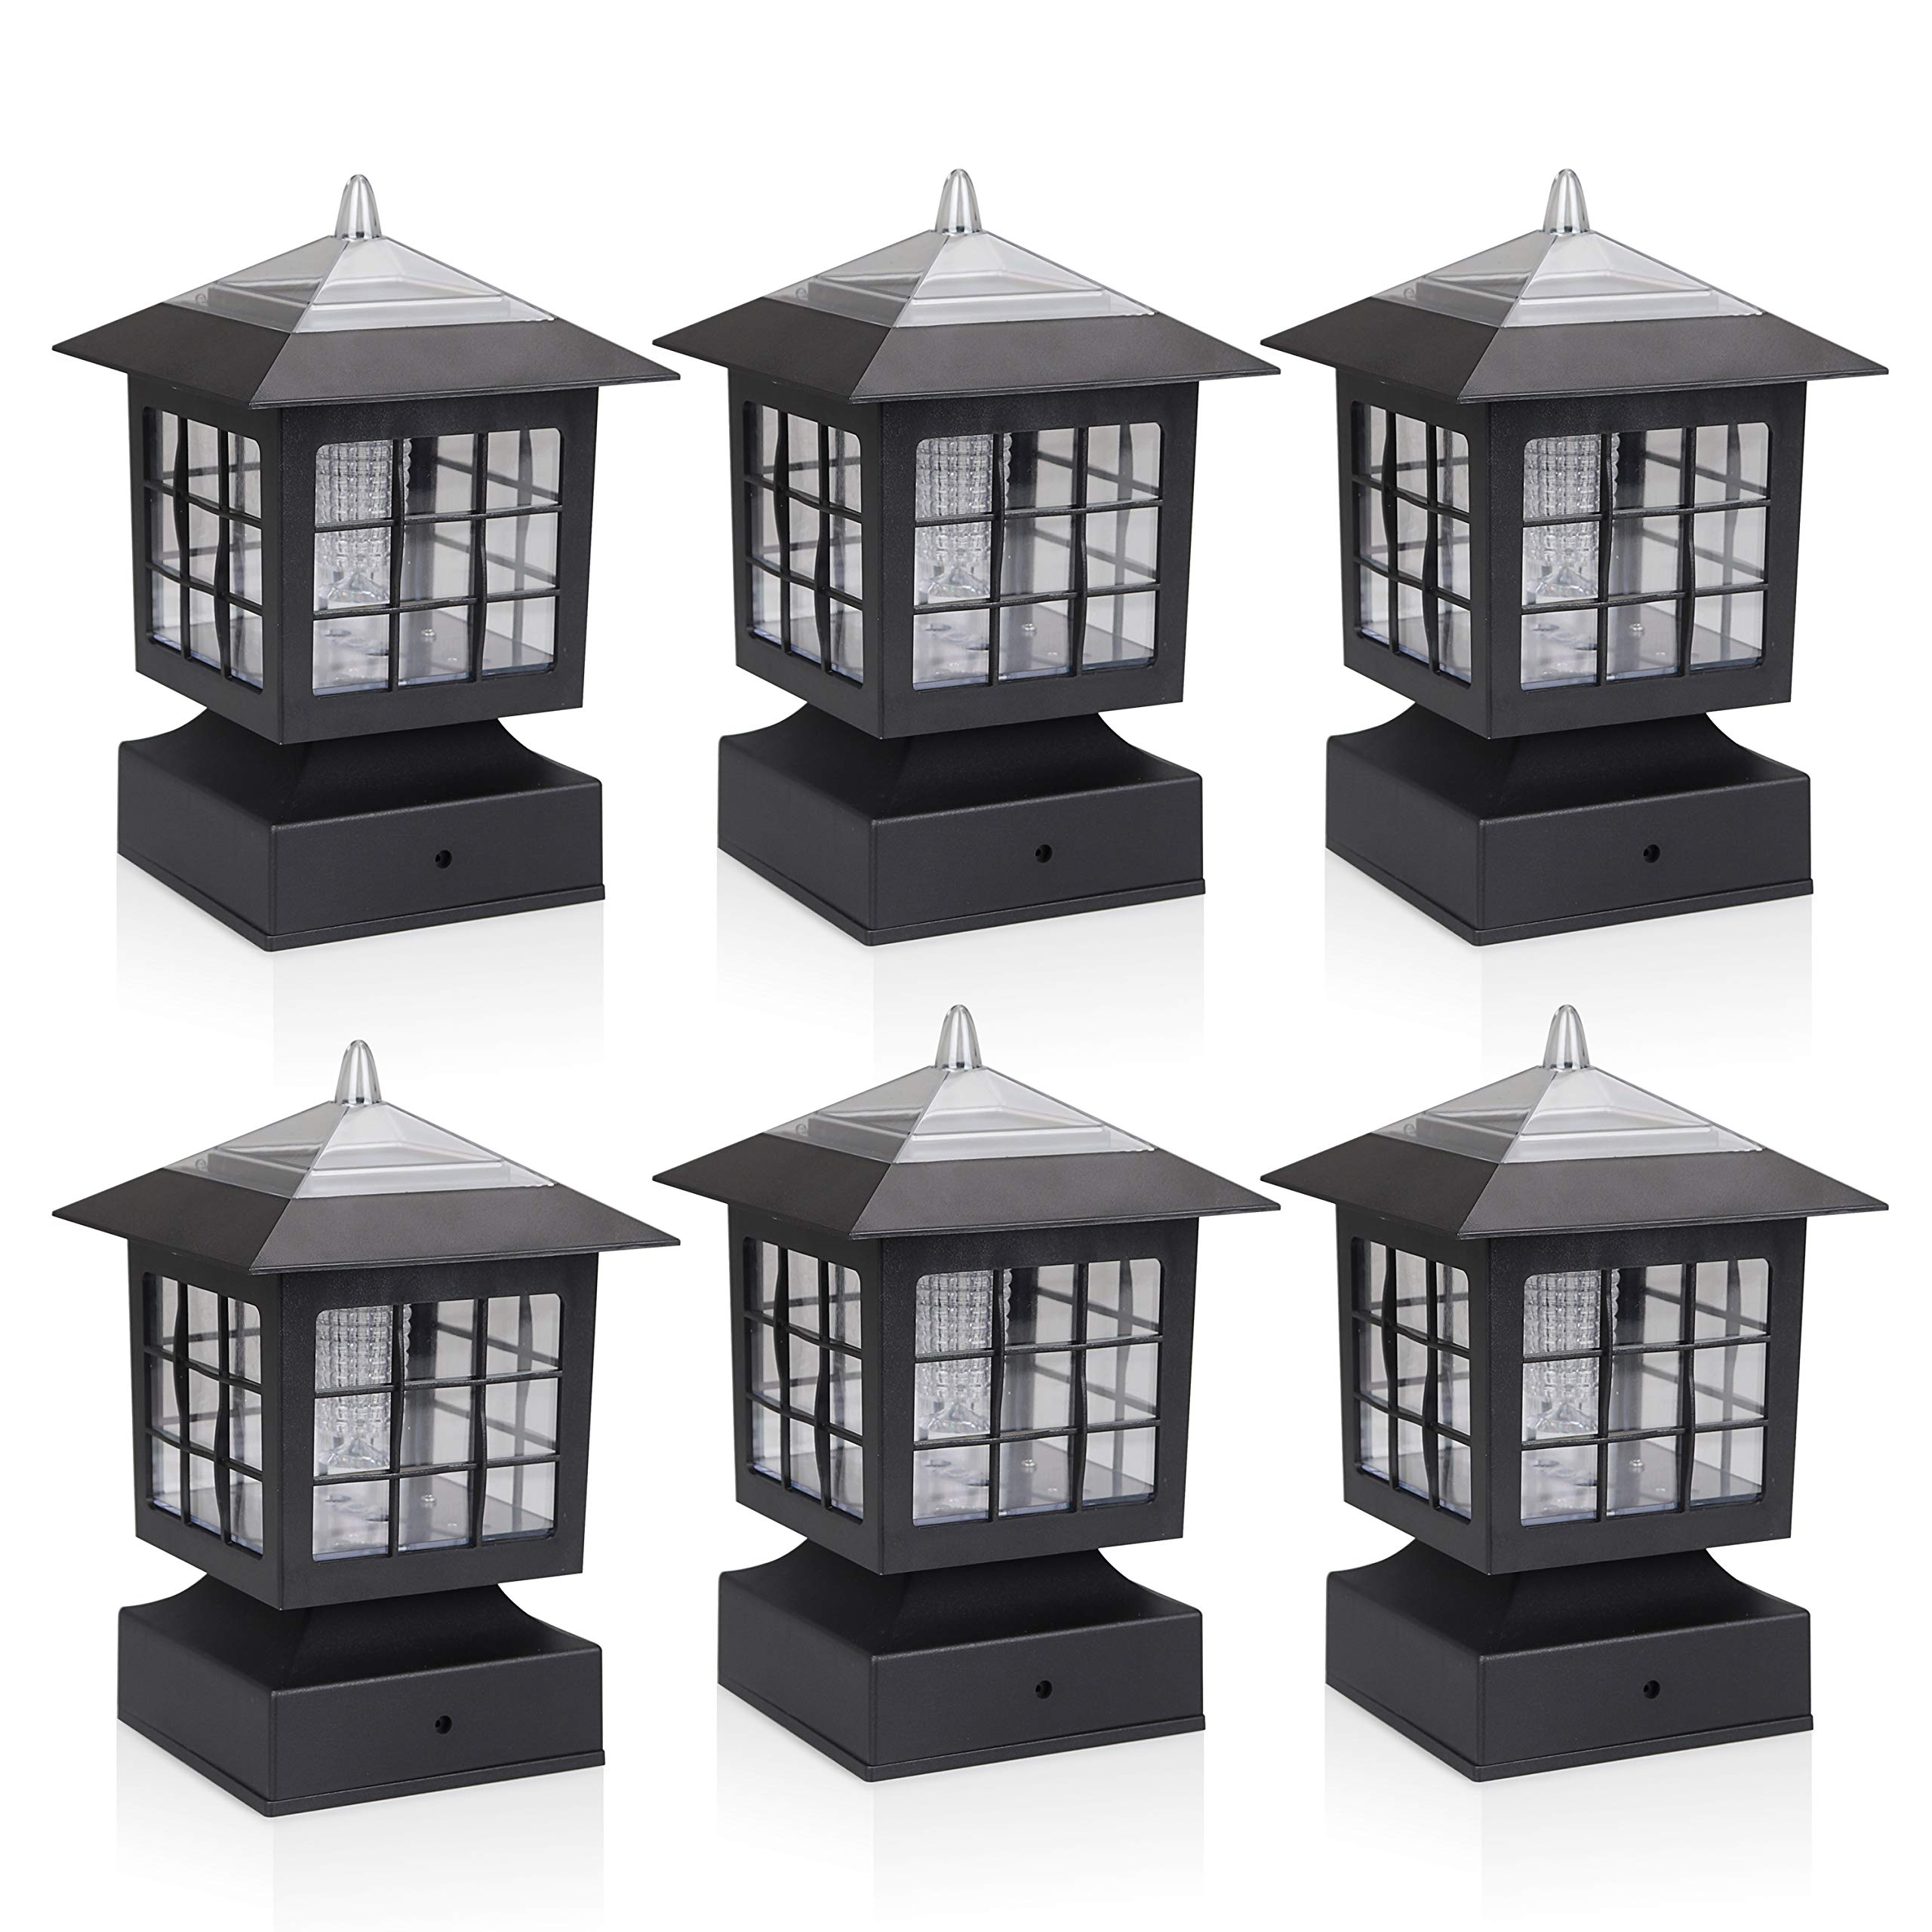 KMC LIGHTING KS101X6 Outdoor Solar Light 6 Pack with 4-Inch Fitter Base for Outdoor Garden Post Pole Mount 4.88X4.88X7.48'' by KMC LIGHTING